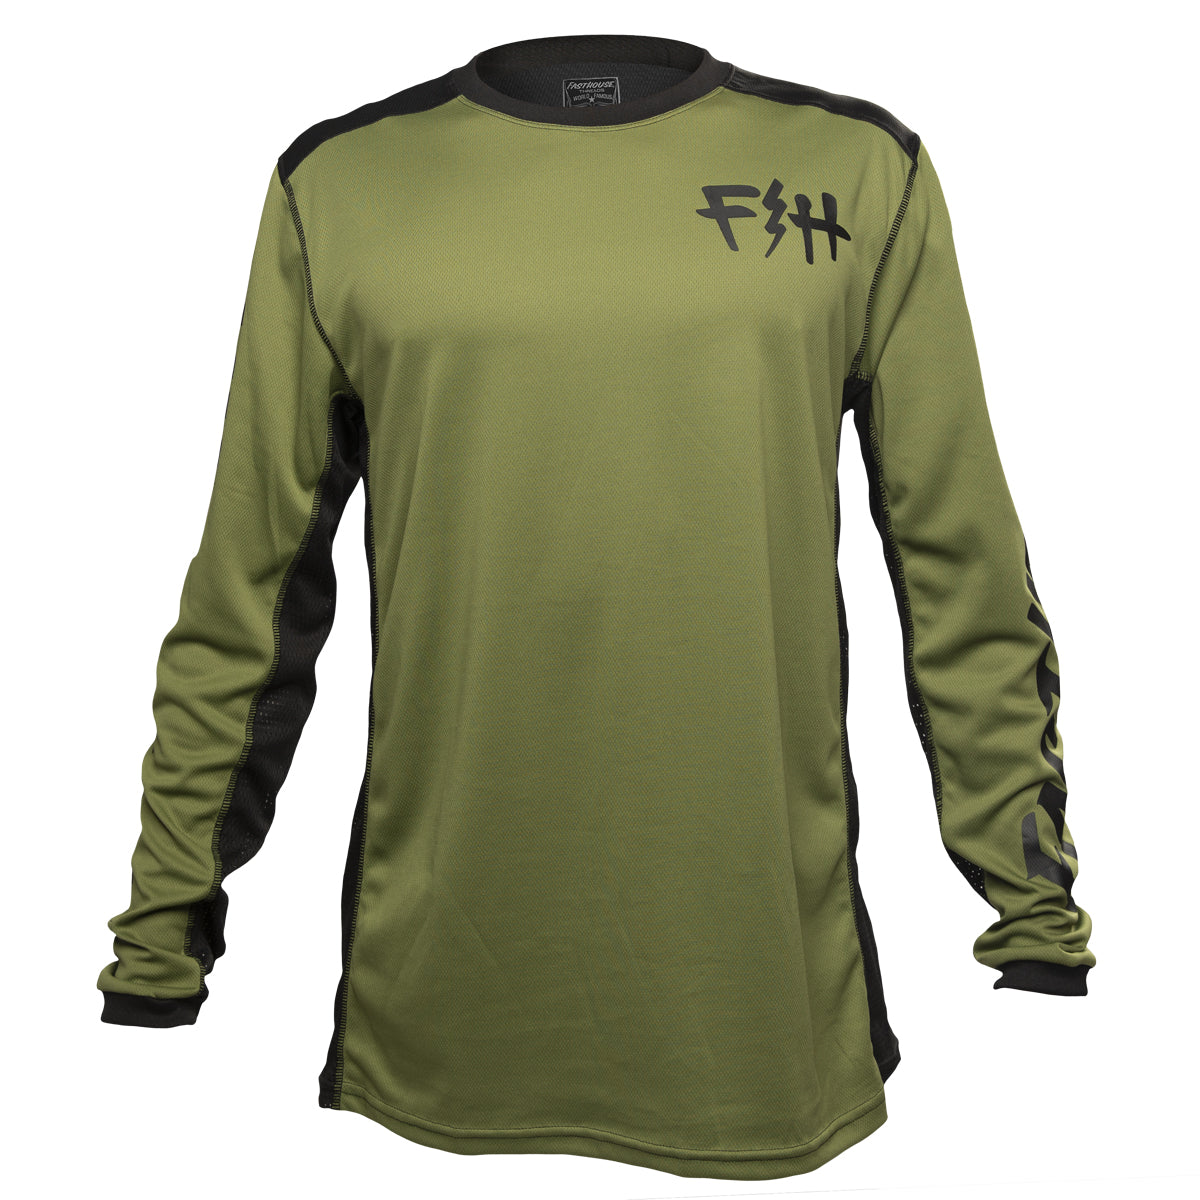 Fasthouse - Fast Bolt MTB Jersey - Olive